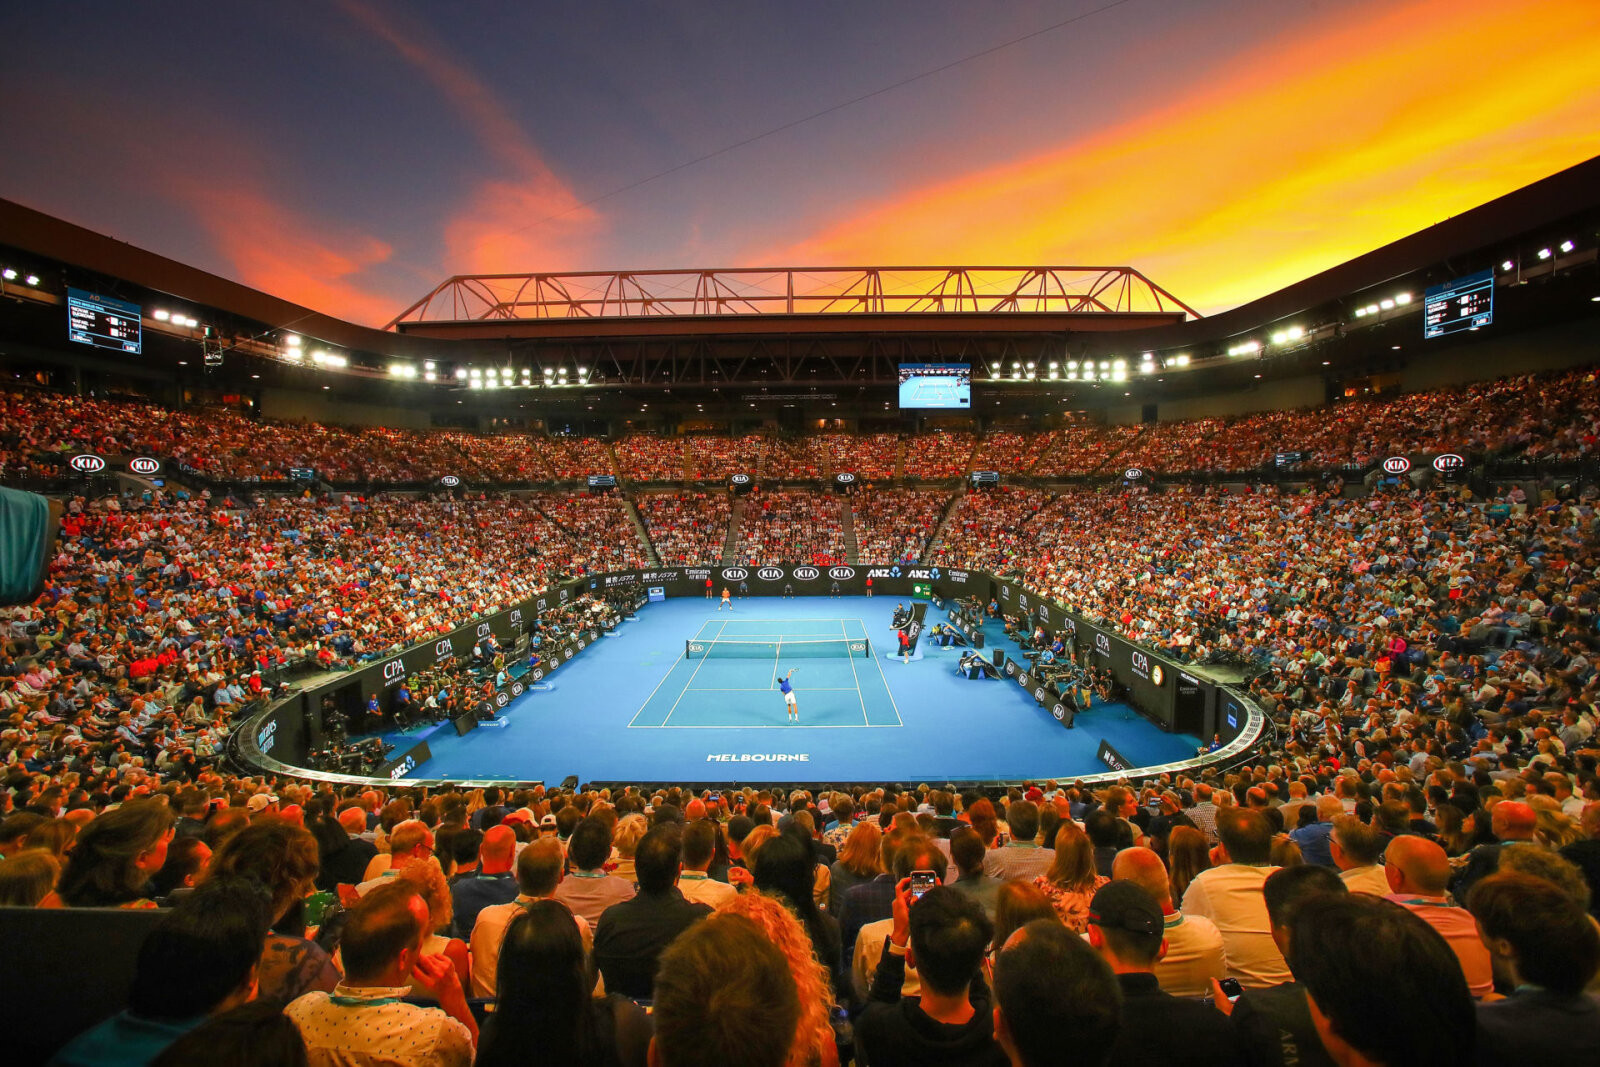 Unvaccinated players warned will face stricter entry conditions for 2022 Australian Open